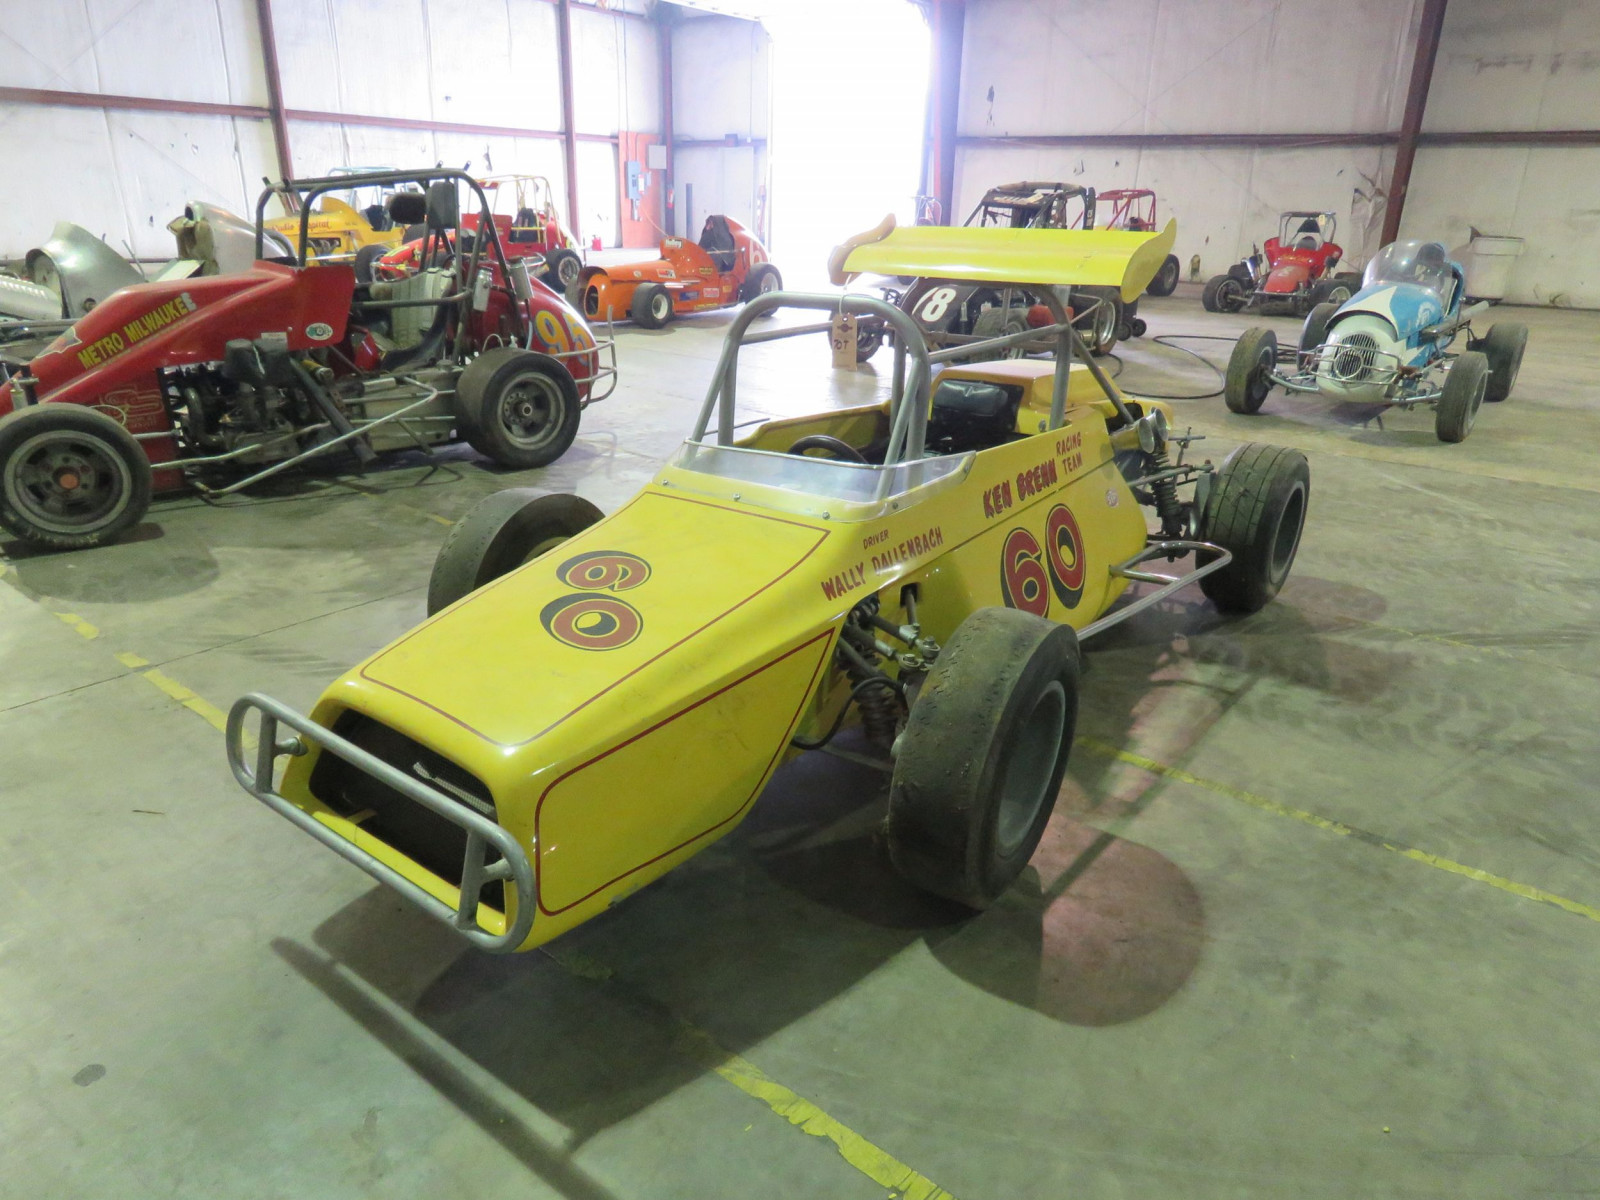 RARE Ken Brenn rear Engine 110 Beattie Midget Race Car - Image 1